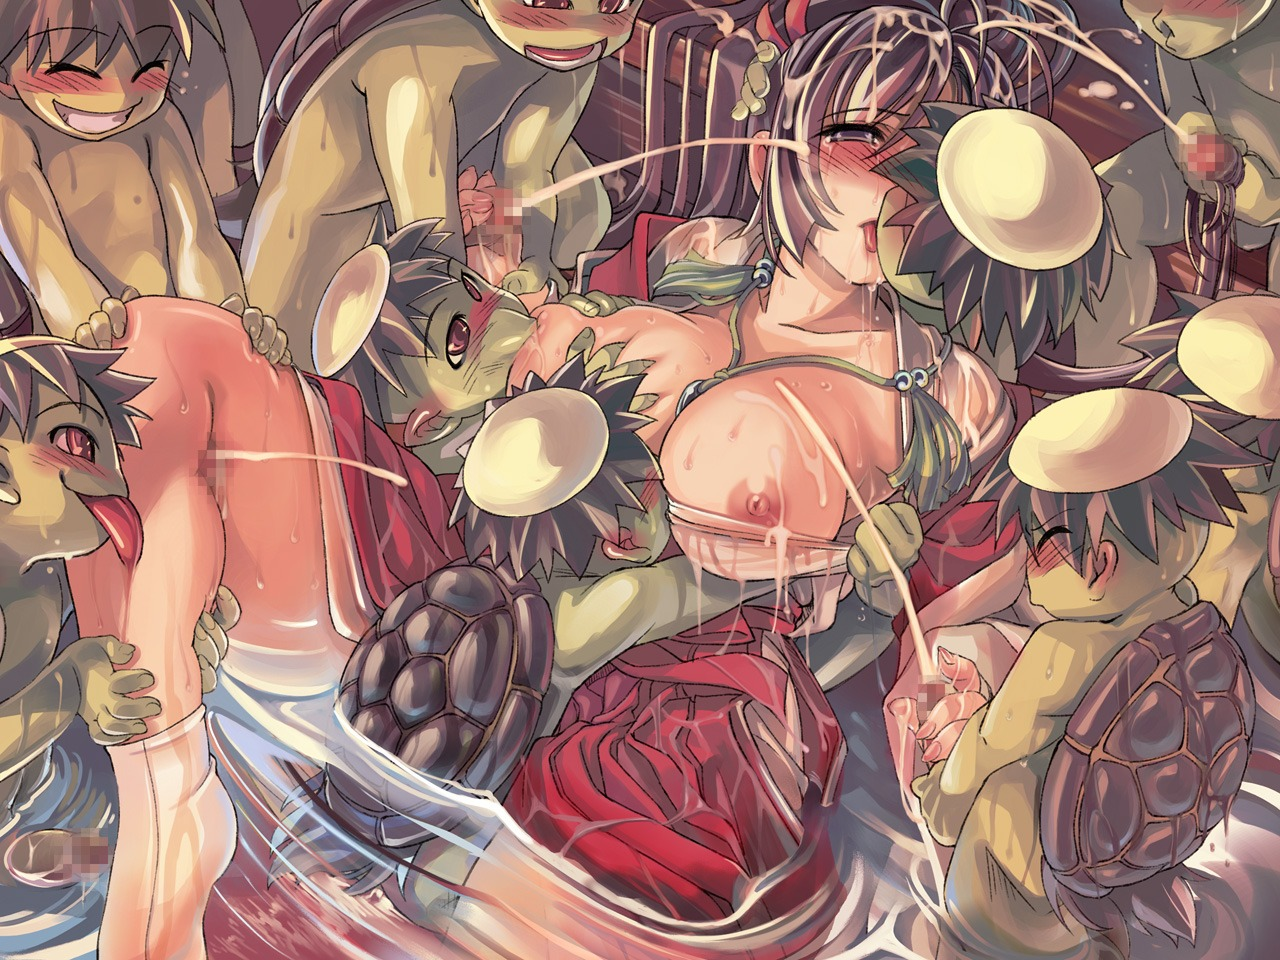 breasts censored cum extreme_content gangbang monster nipples penis ragnarok_online sex wallpaper xration